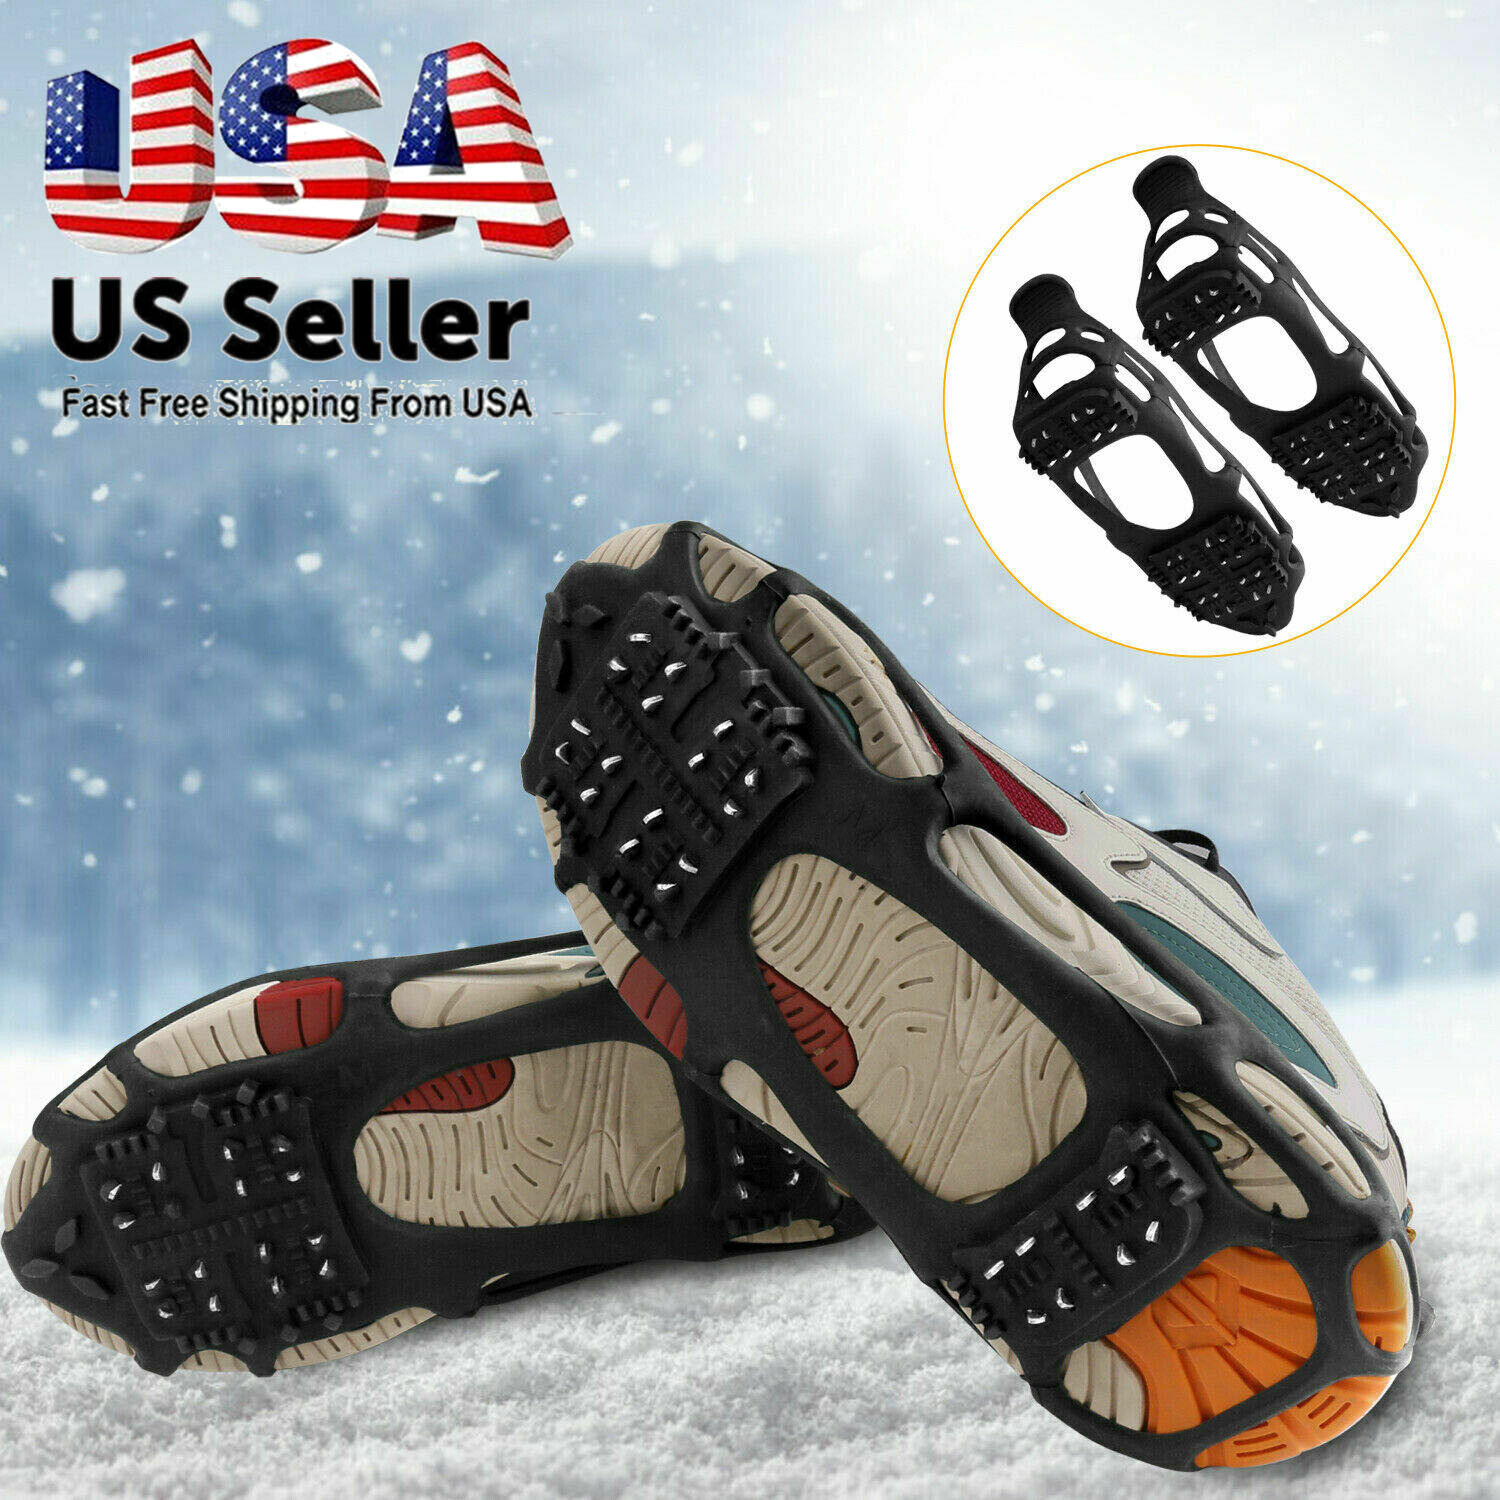 good01 Cleats Cover,1 Paire 11 Dents Ice Snow Grips Crampon Winter Hiking Climbing Chaussures